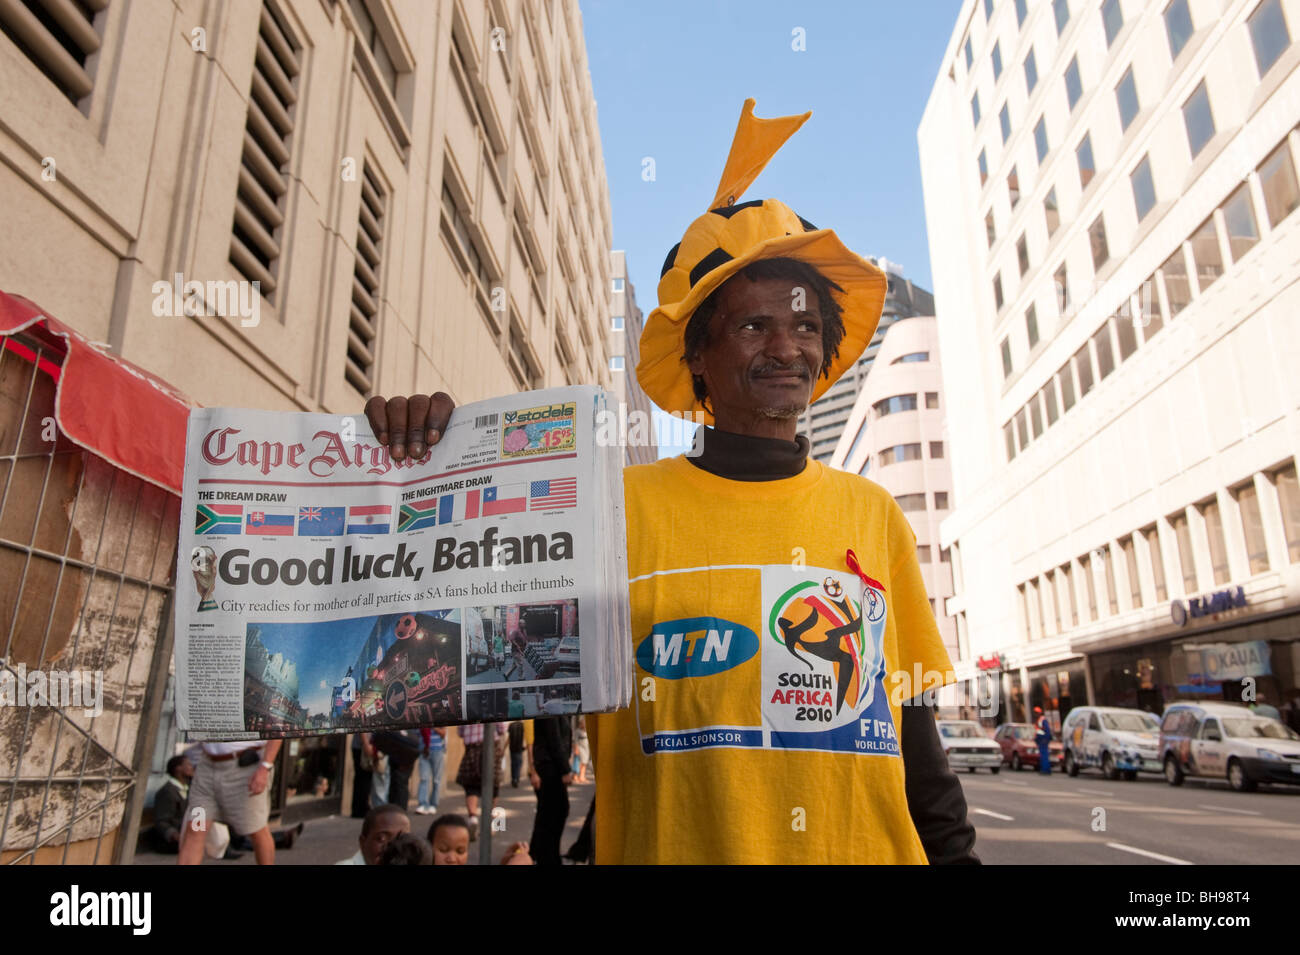 Newsman selling newspaper with headline about Bafana Bafana the African National football team Cape Town South Africa - Stock Image